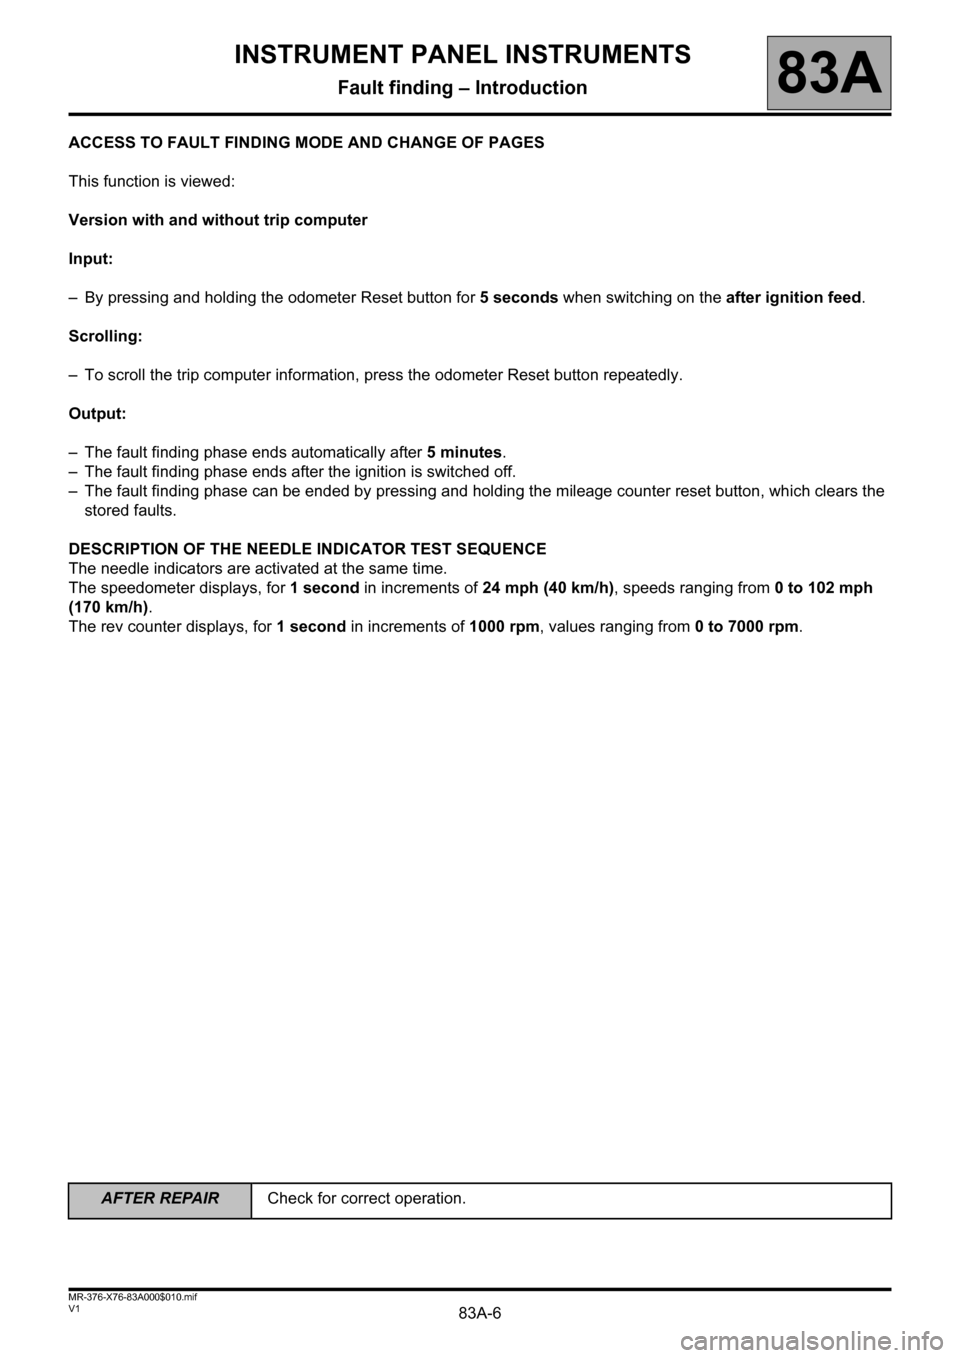 RENAULT KANGOO 2013 X61 / 2.G Instrument Panel Instruments Workshop Manual, Page 6